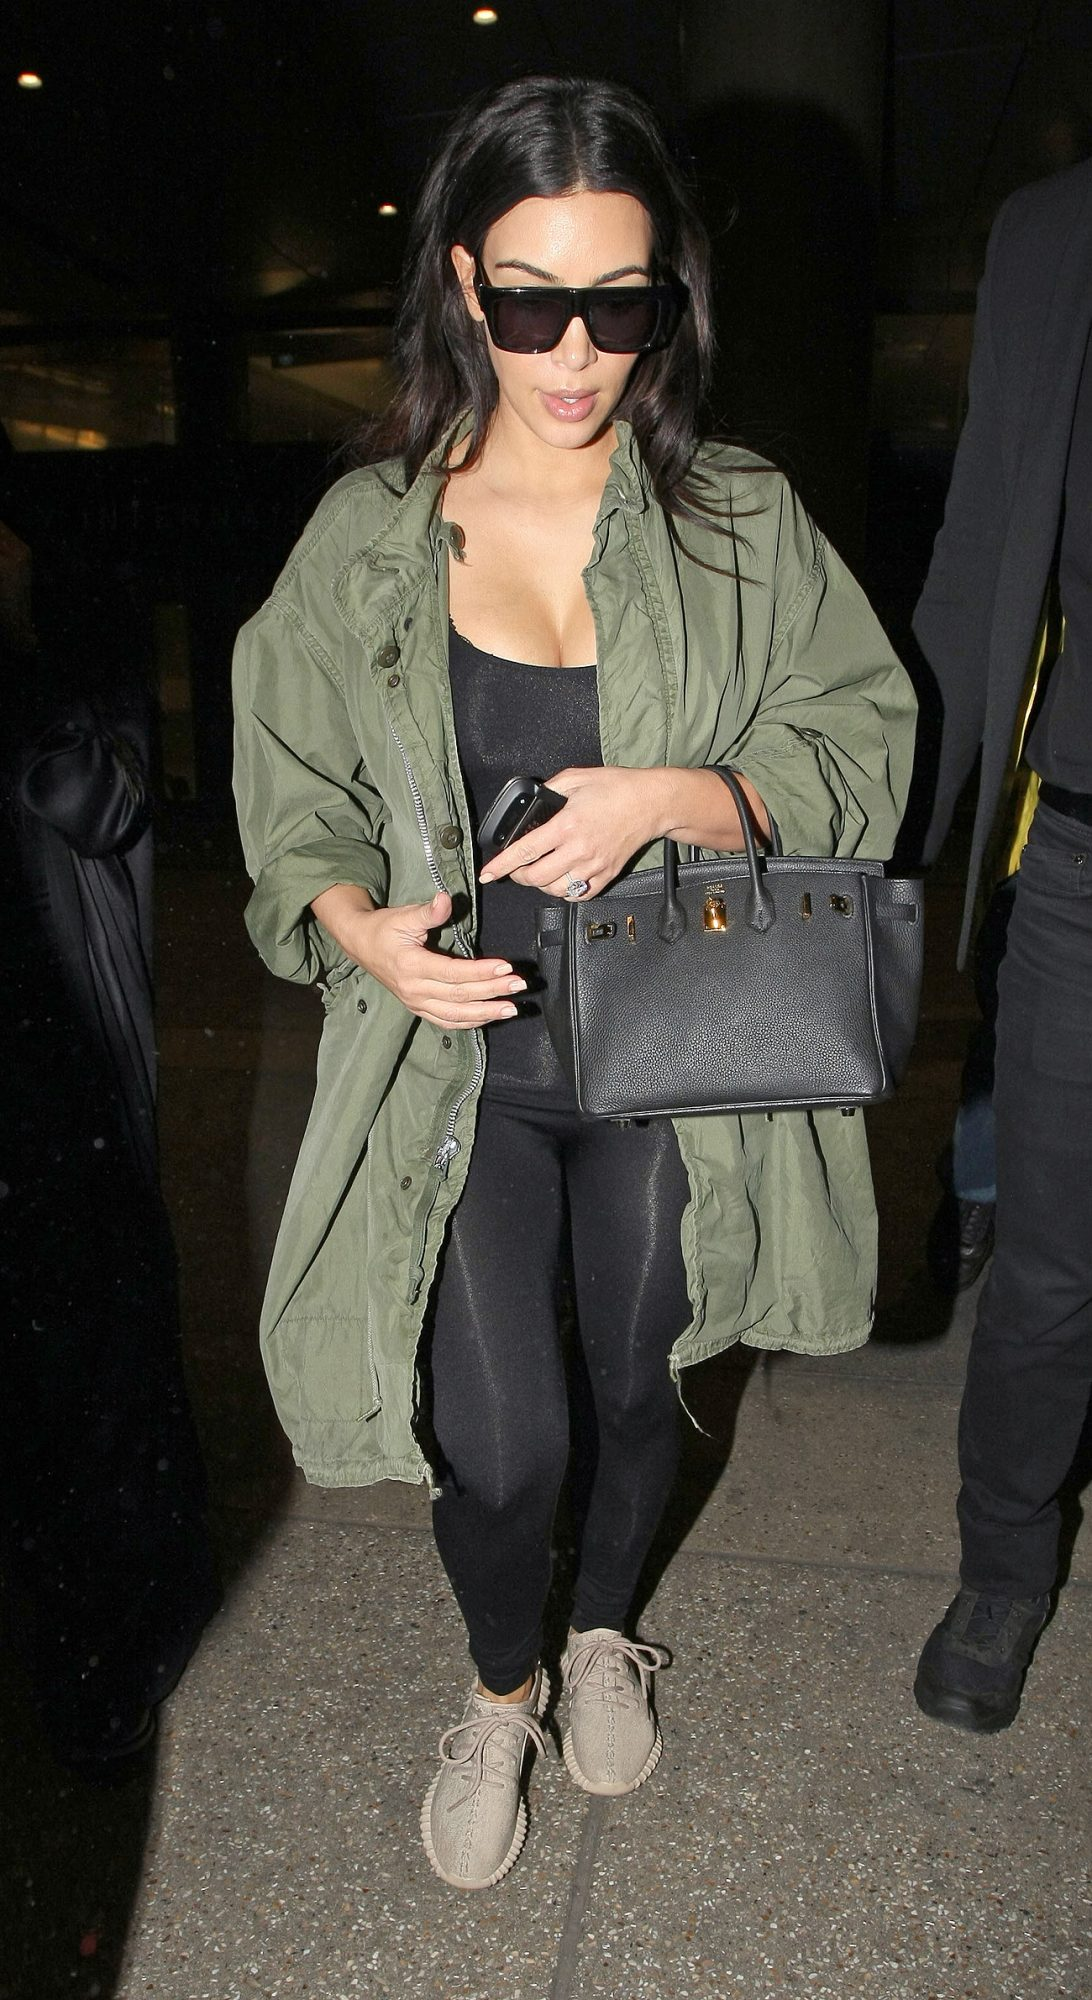 Kim and Kourtney Kardashian arrive at LAX airport in Los Angeles, CA